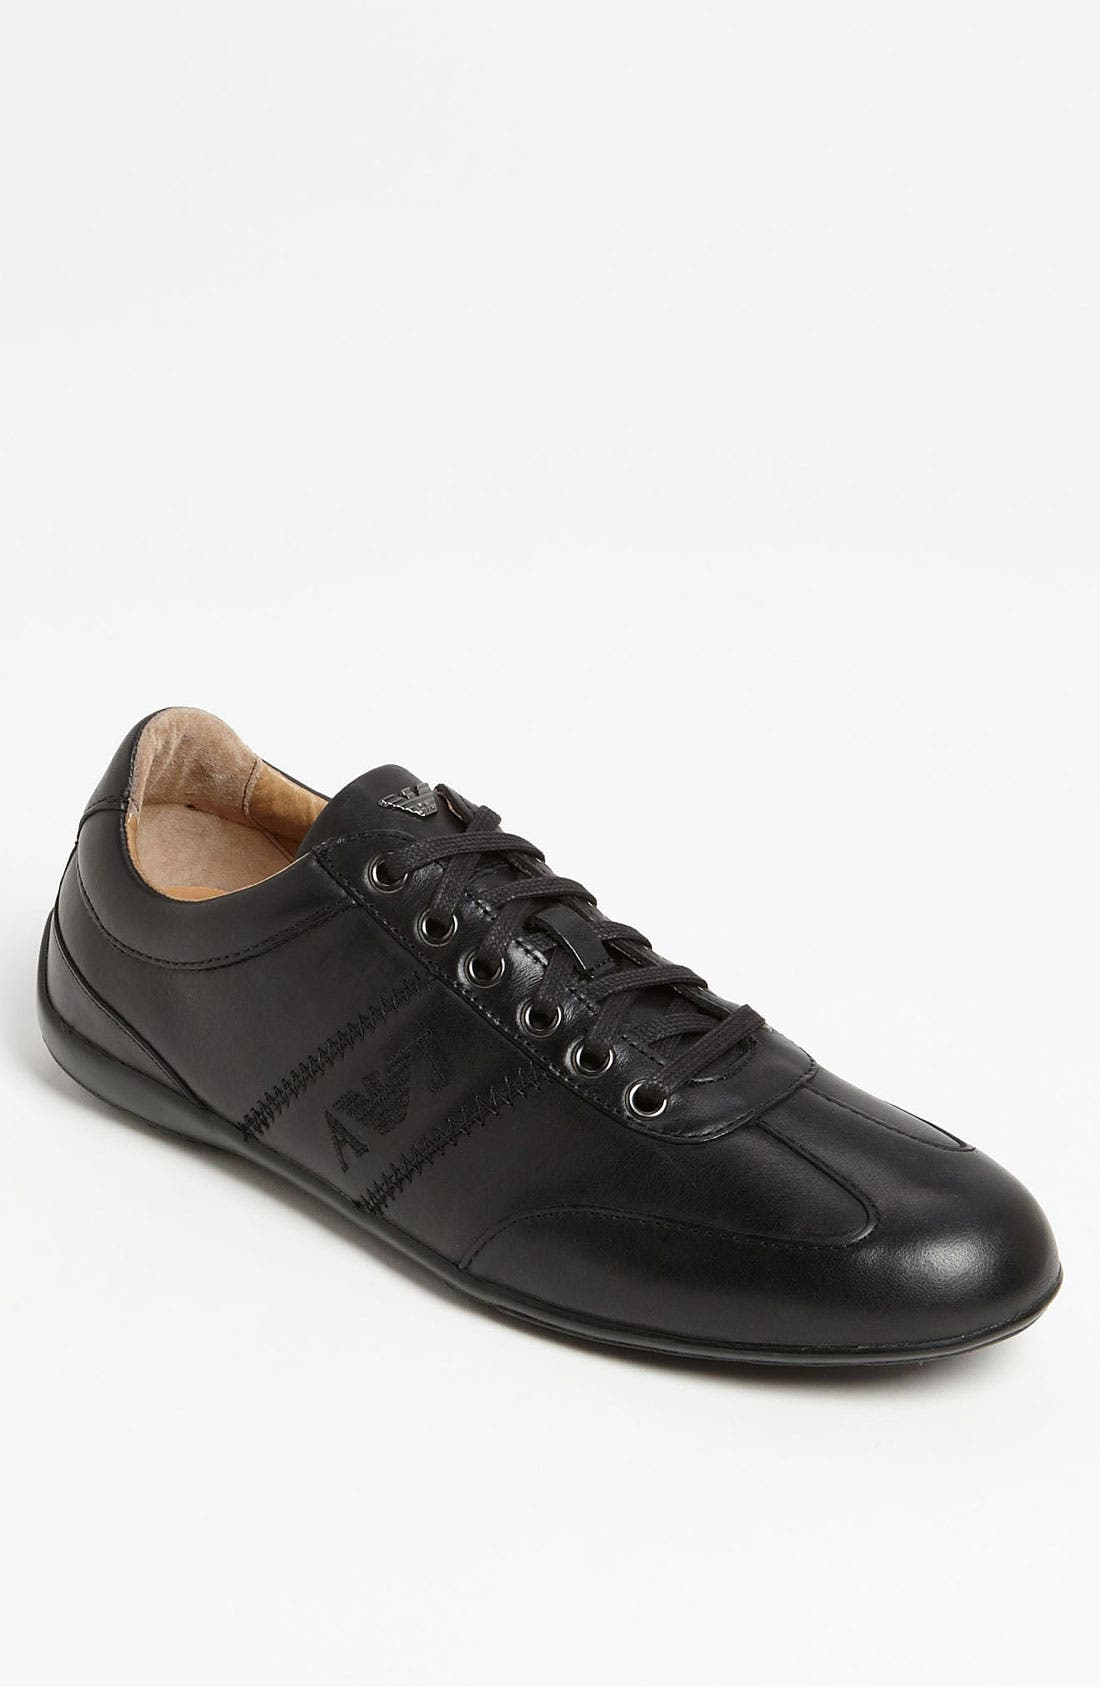 Alternate Image 1 Selected - Armani Jeans Leather Sneaker